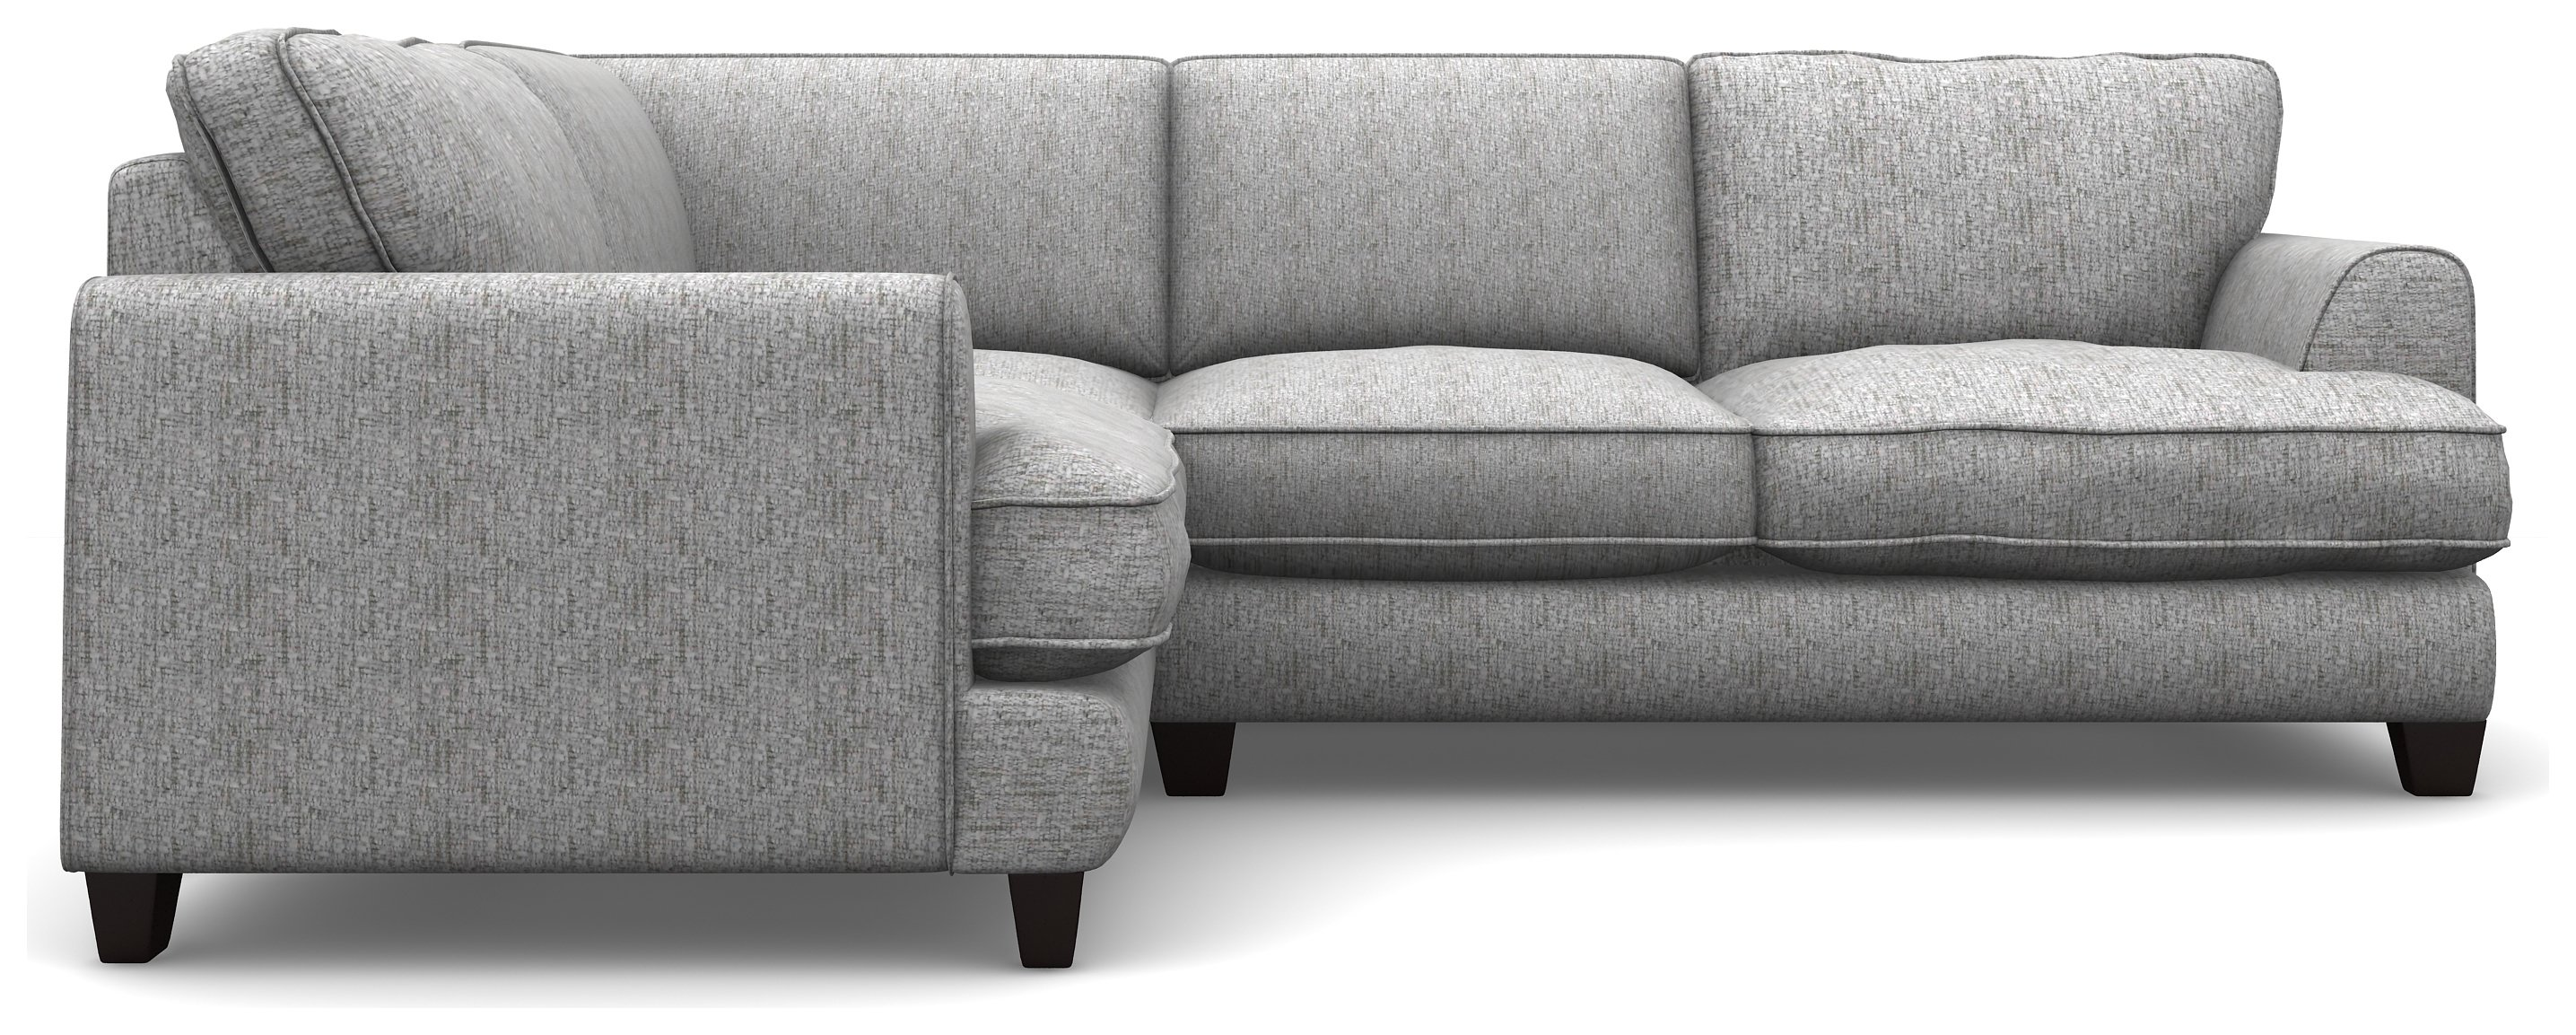 Create your own Hampstead Fabric LH Corner Sofa - Light Grey + Black Legs